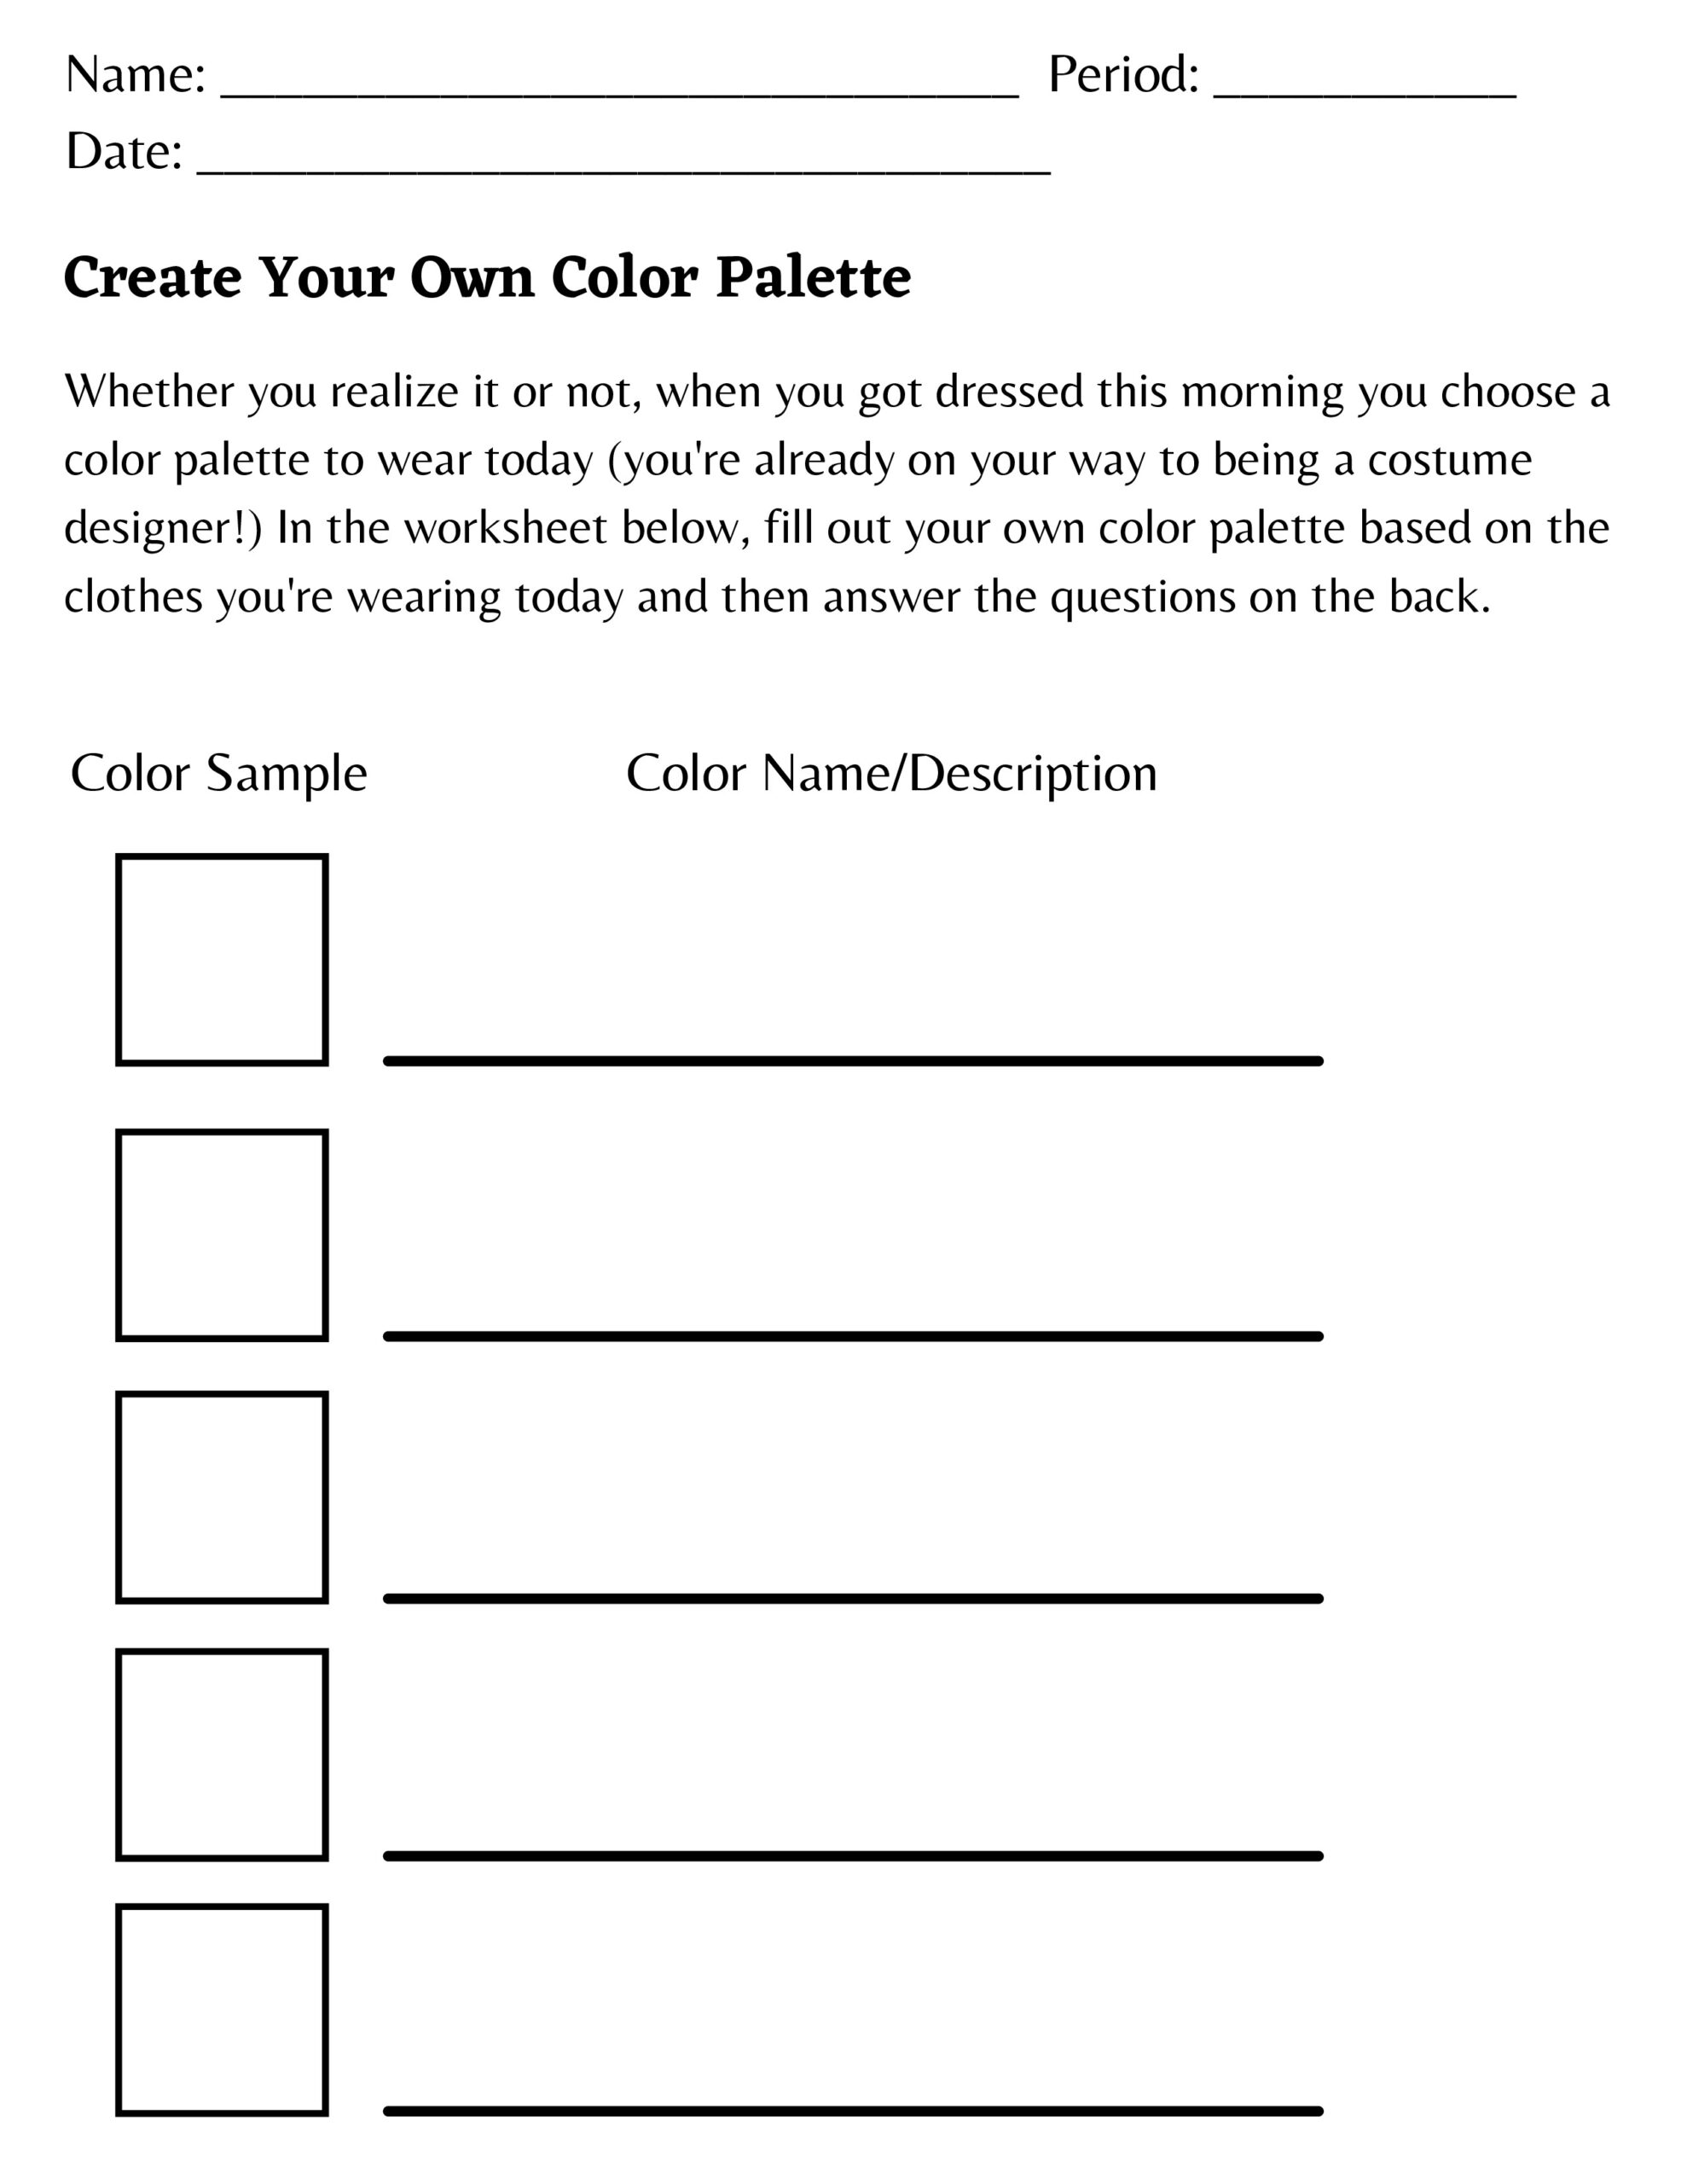 You're Wearing a Color Palette!